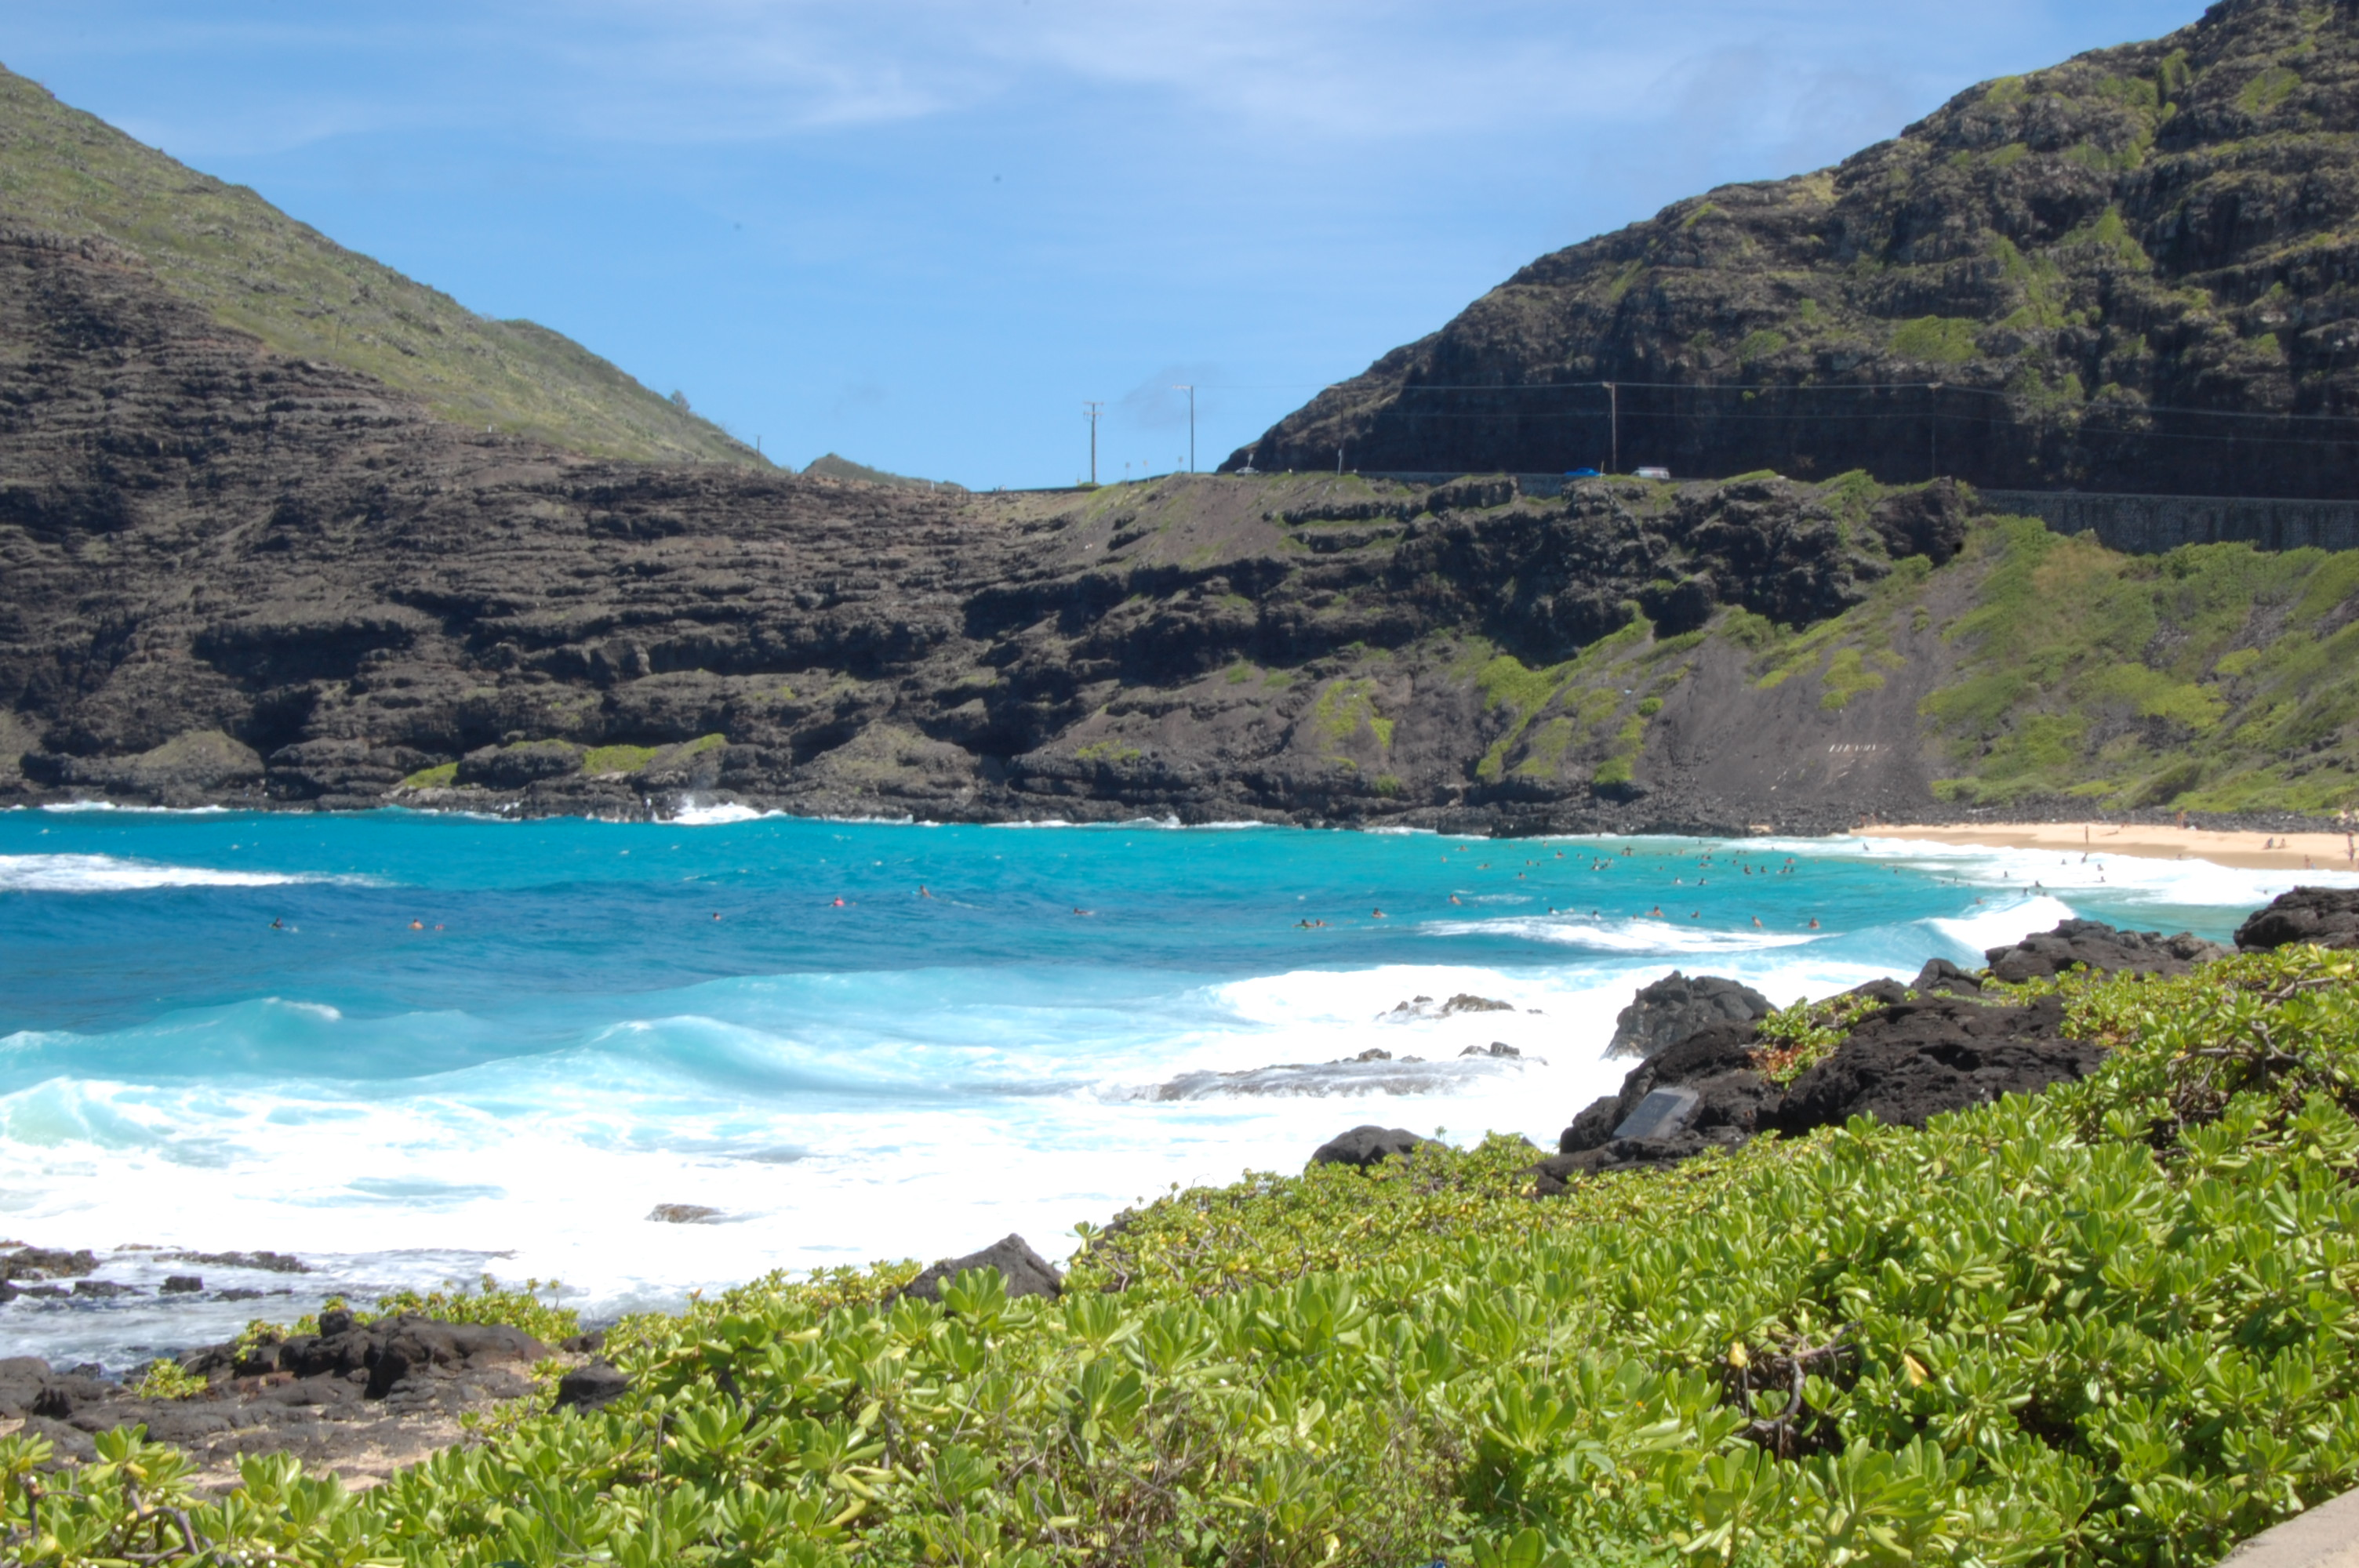 Makapuu from above.